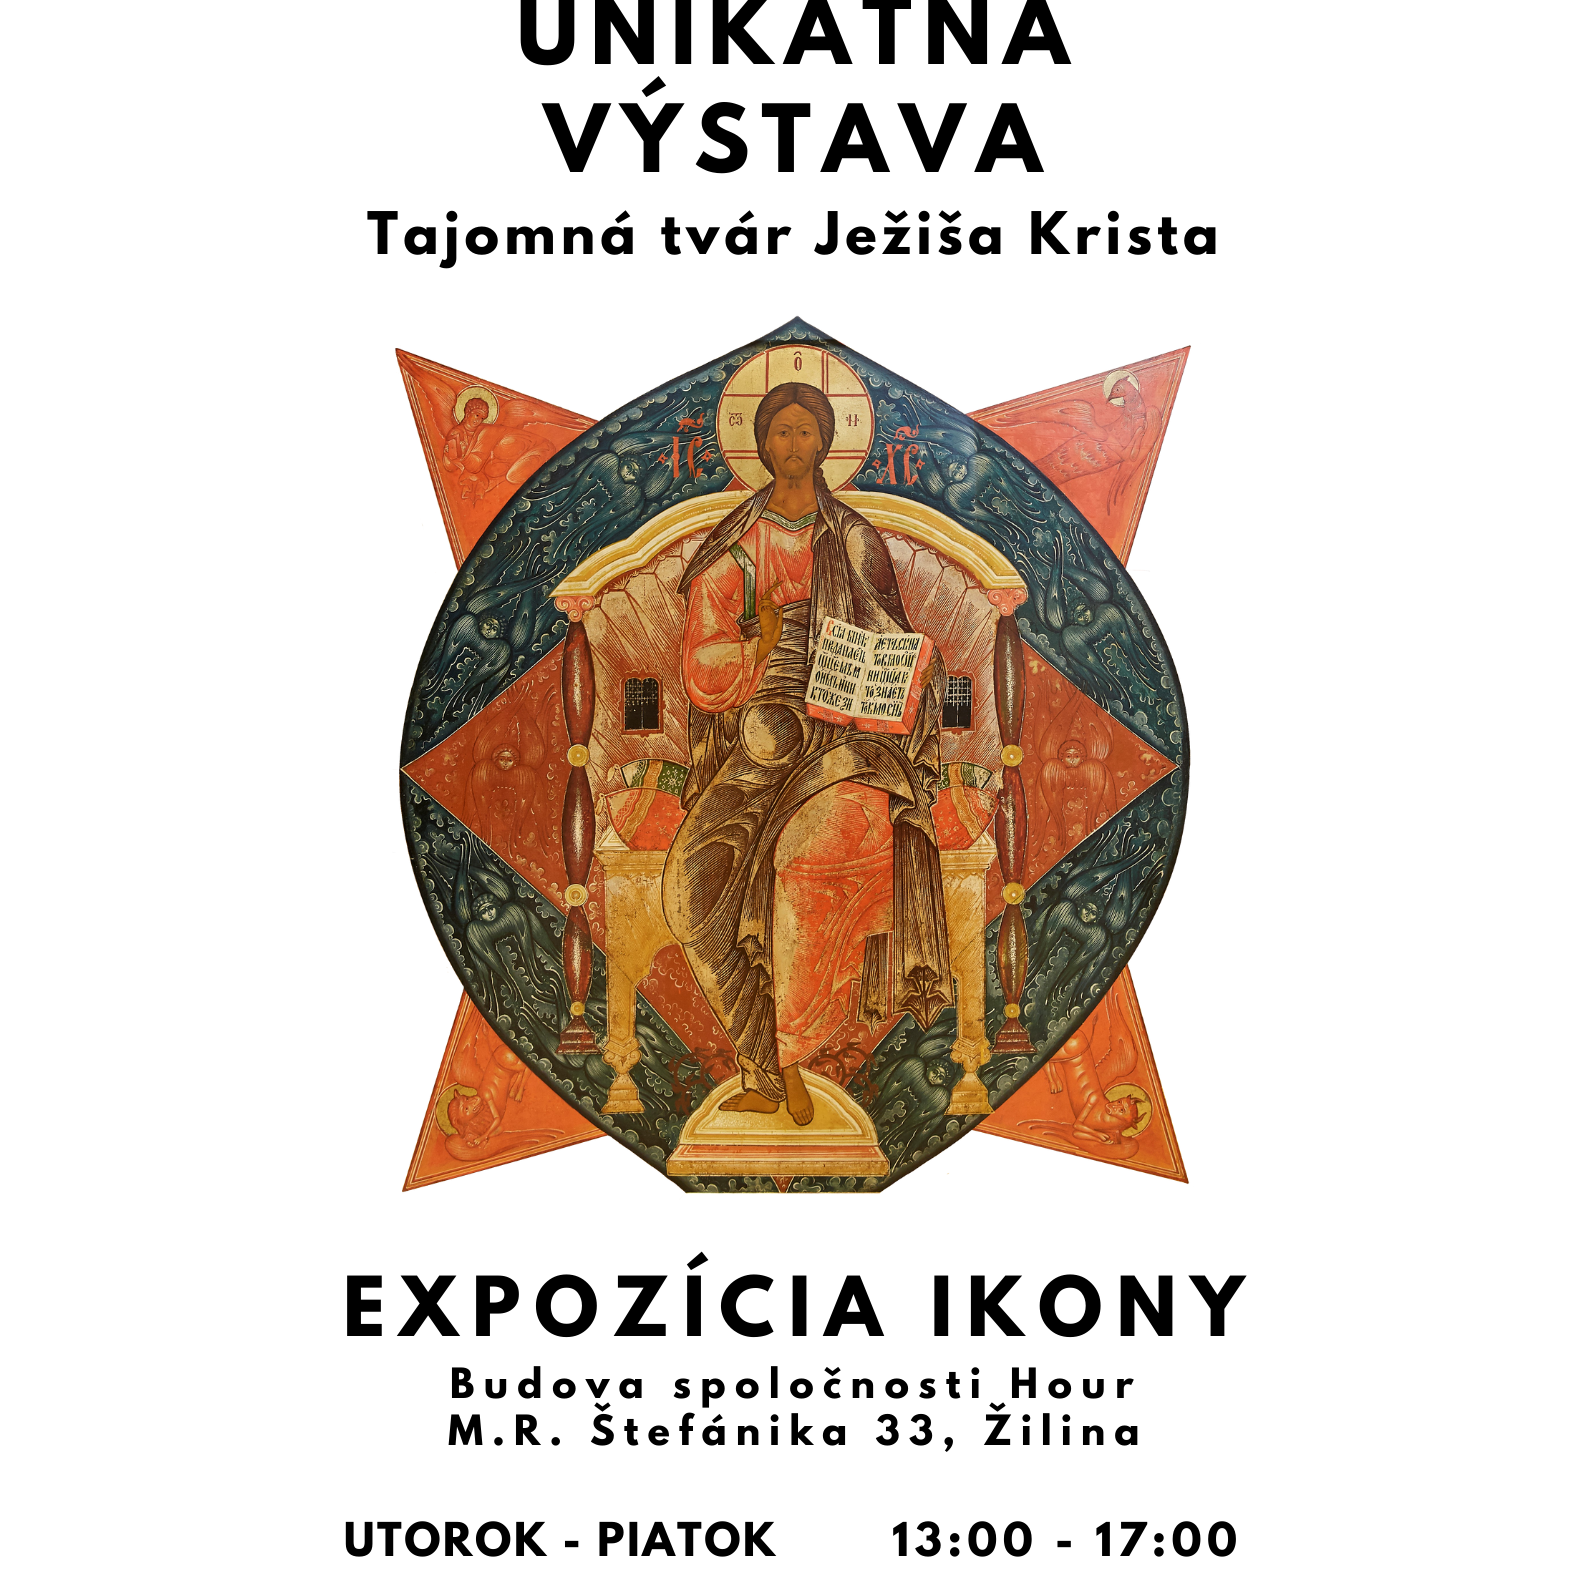 events/2020/09/admid0000/images/ikony plagat vystava.png